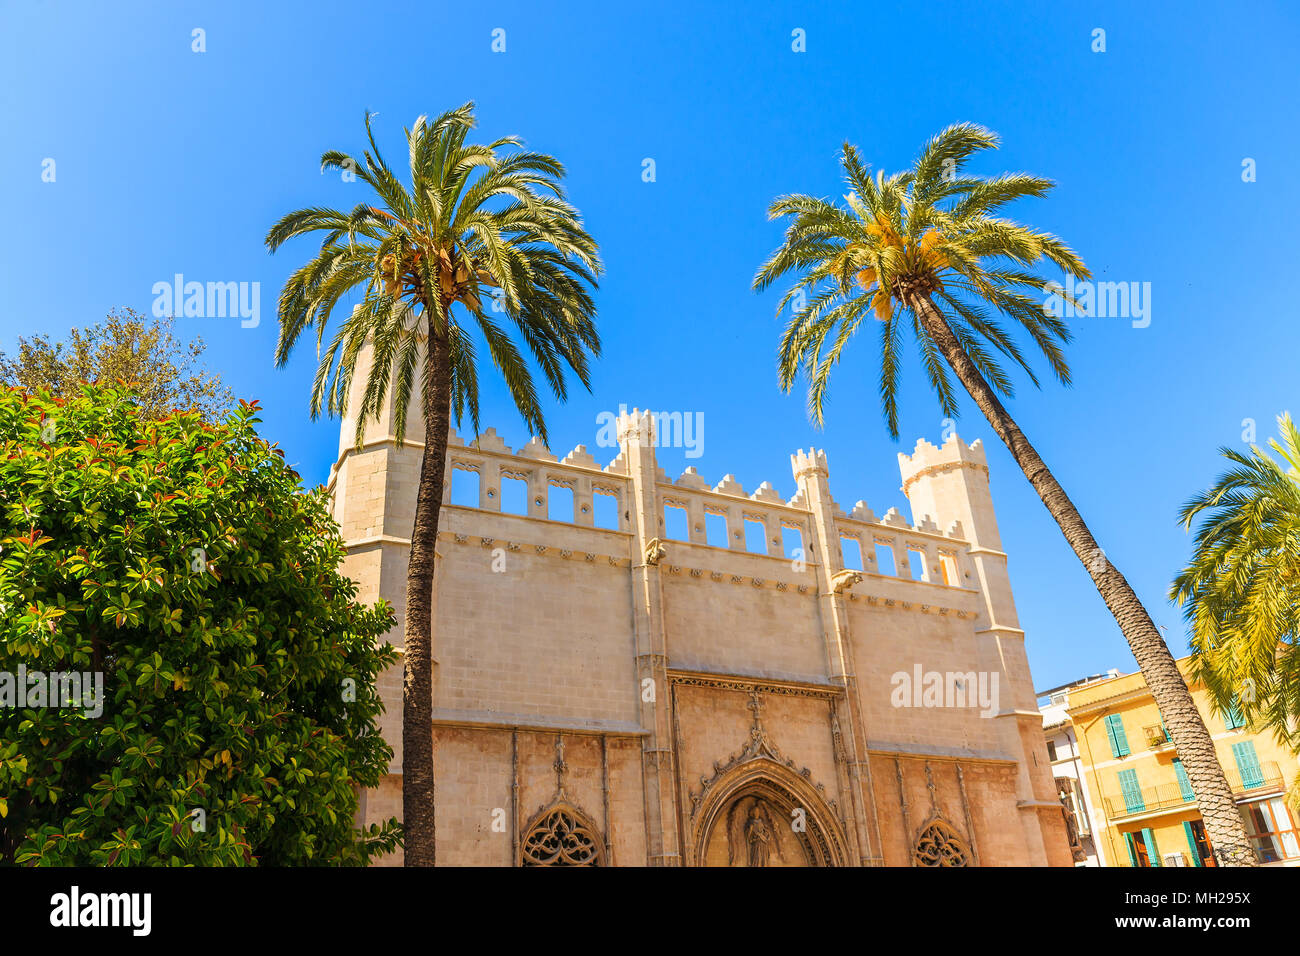 Gate and palm tree of historic building in old town of Palma de Majorca, Spain - Stock Image